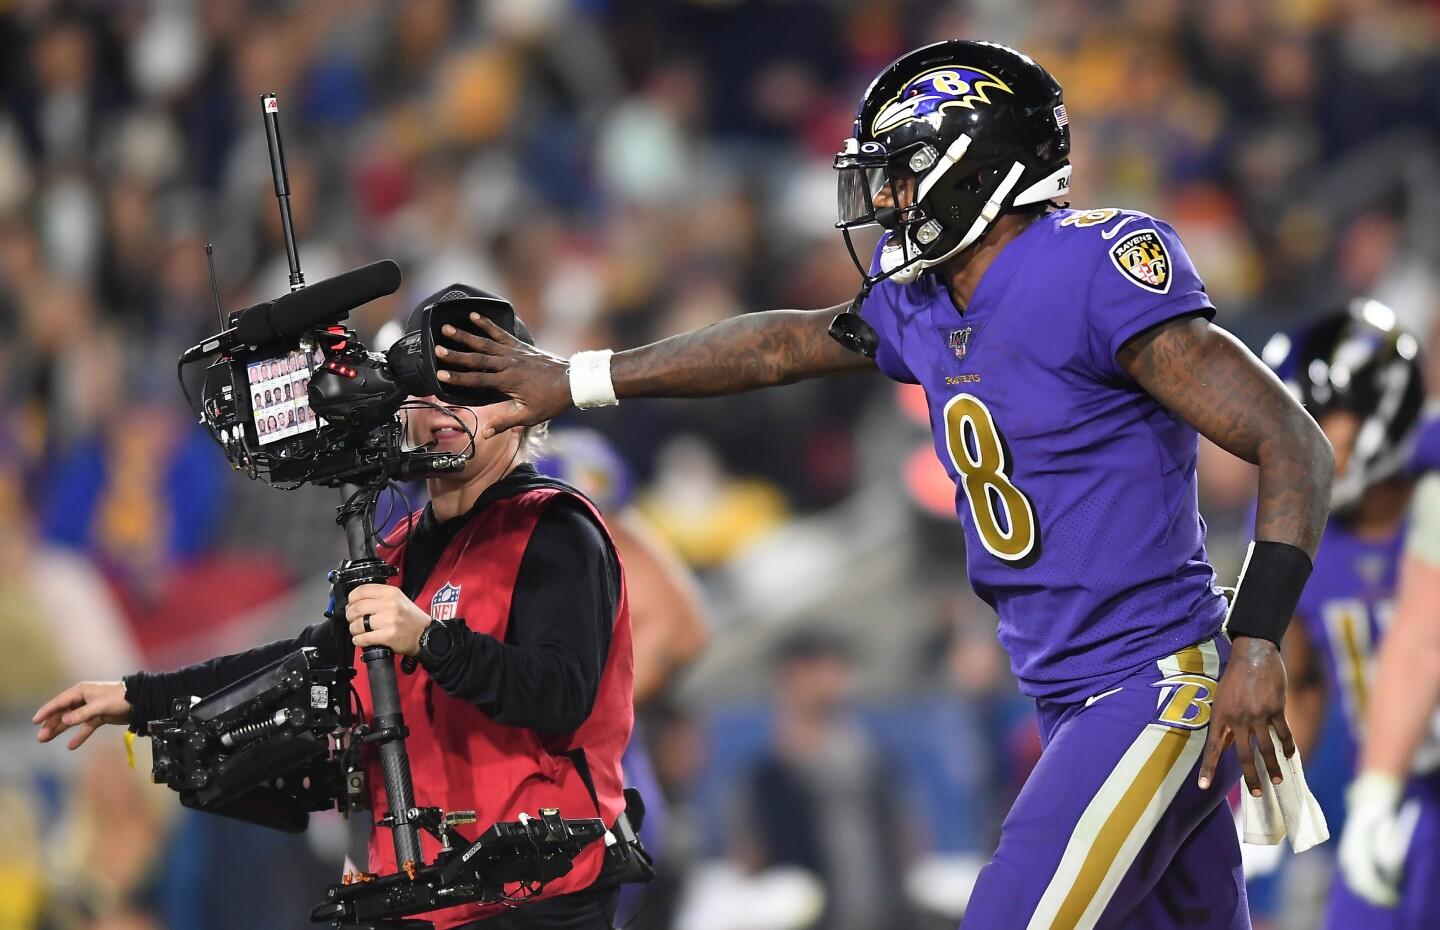 LOS ANGELES, CALIFORNIA NOVEMBER 25, 2019-Ravens quarterback Lamar Jackson covers the lens form a televison cameraman after his team scored a touchdown against the Rams in the 4th quarter at the Coliseum Sunday. (Wally Skalij/Los Angerles Times)